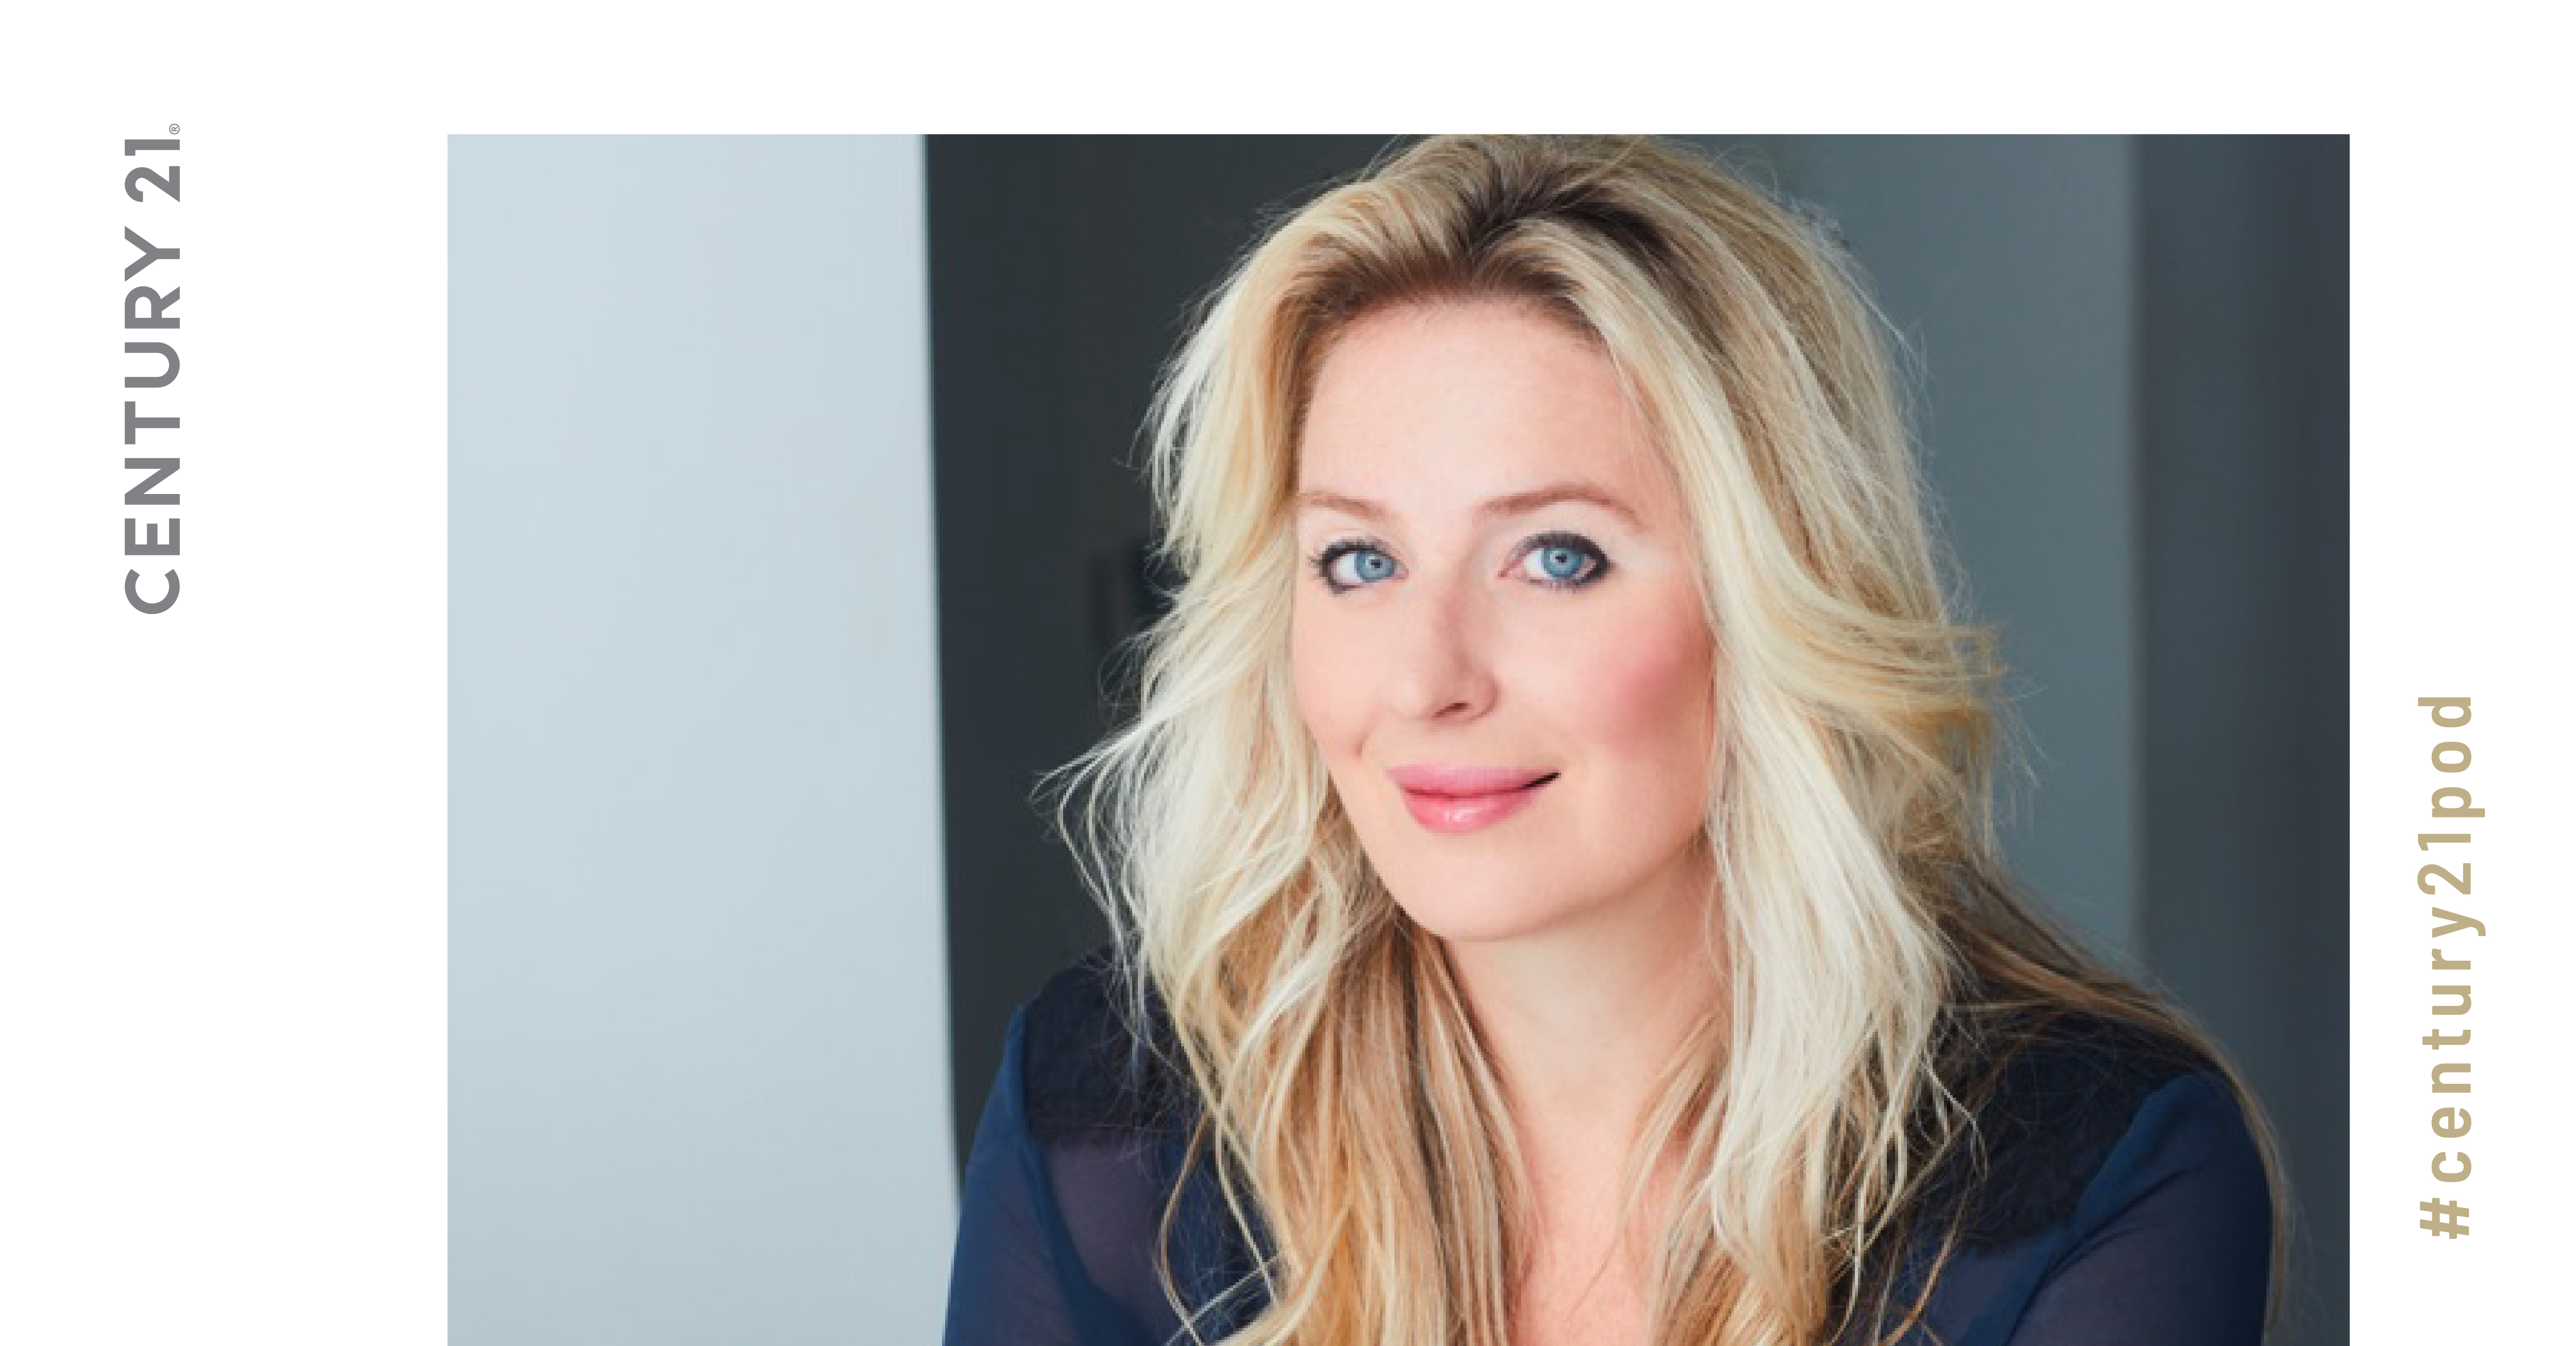 Selling Yourself Online, Lessons from the CMO of OkCupid